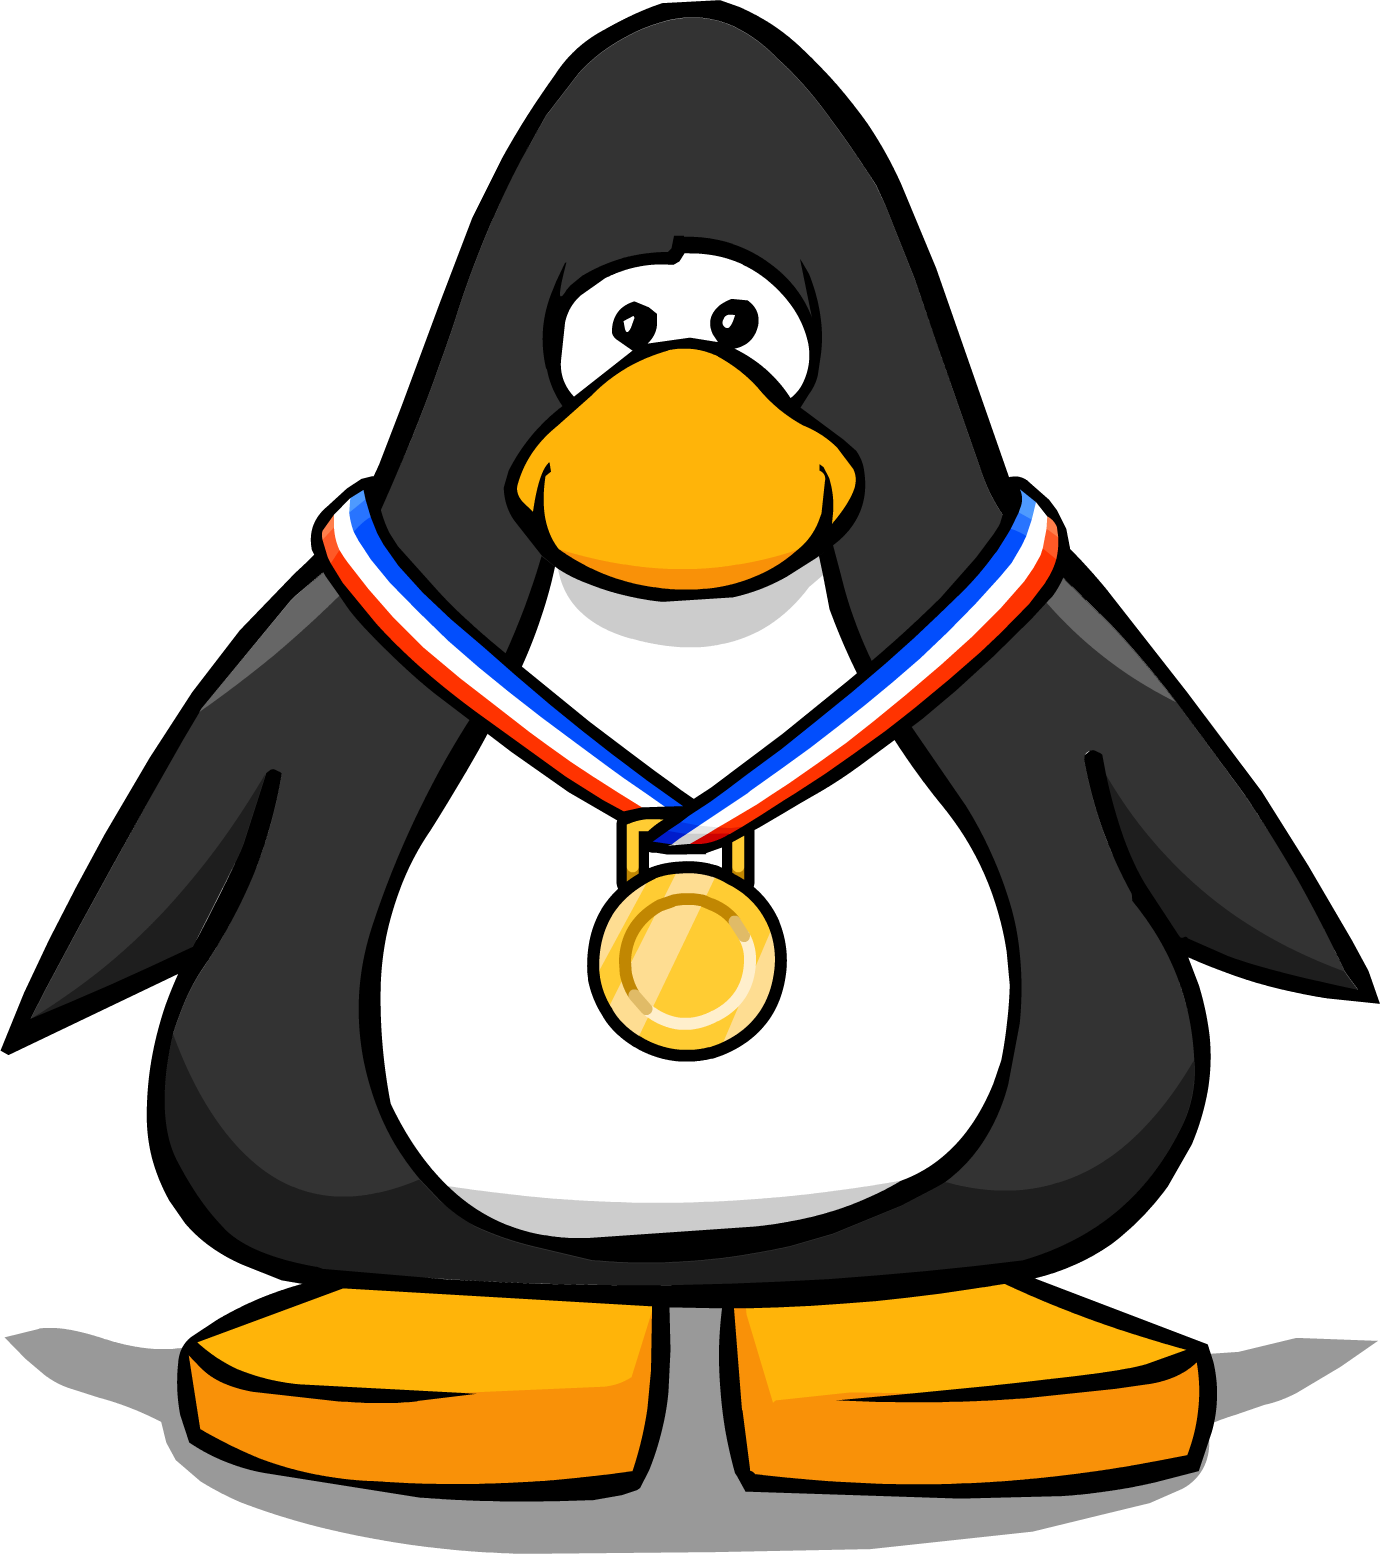 image gold medal from a player cad png club penguin wiki